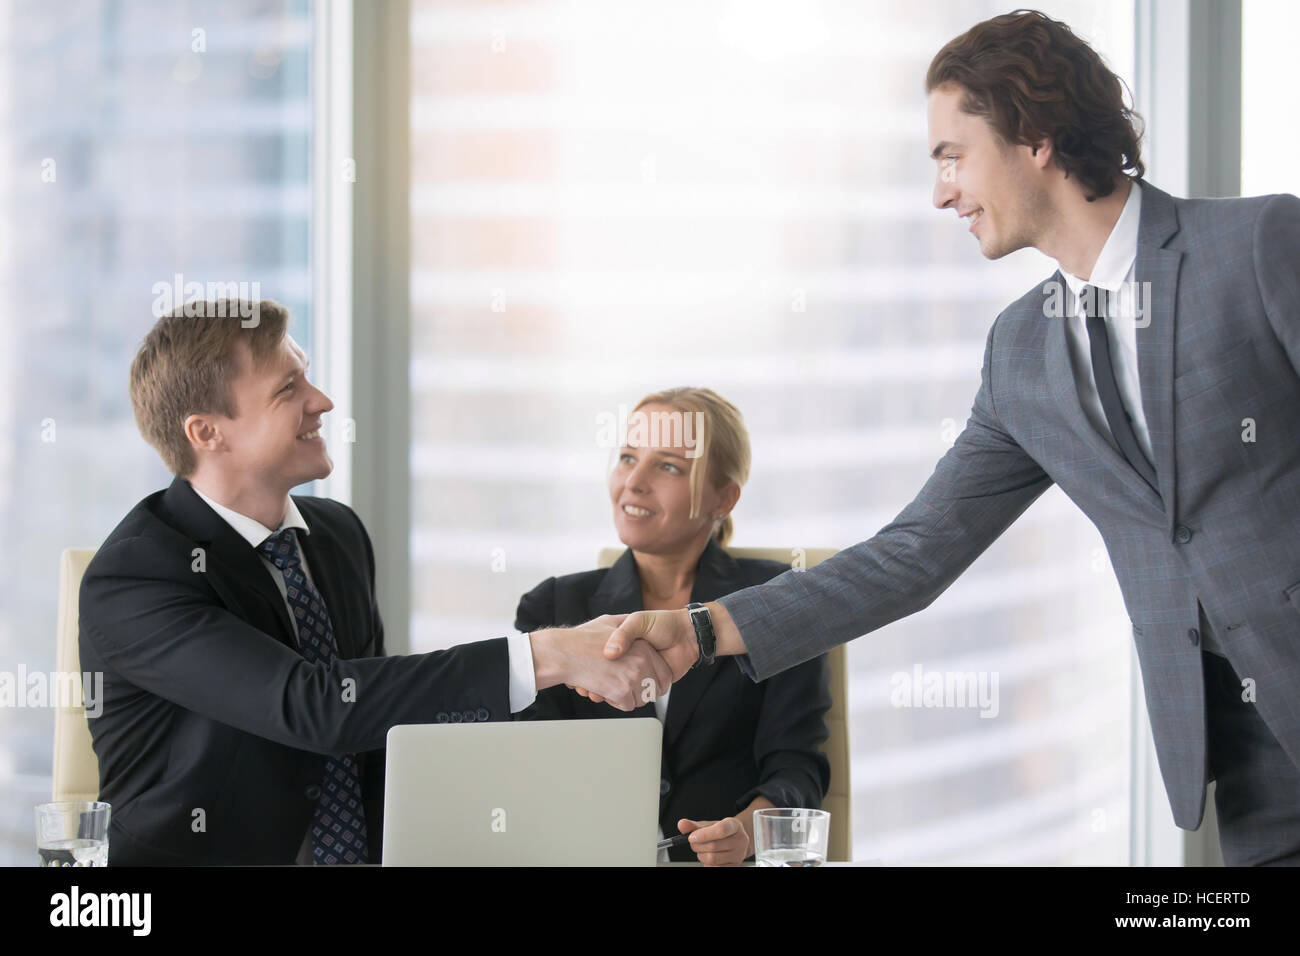 Business people greeting each other stock photo 128174493 alamy business people greeting each other m4hsunfo